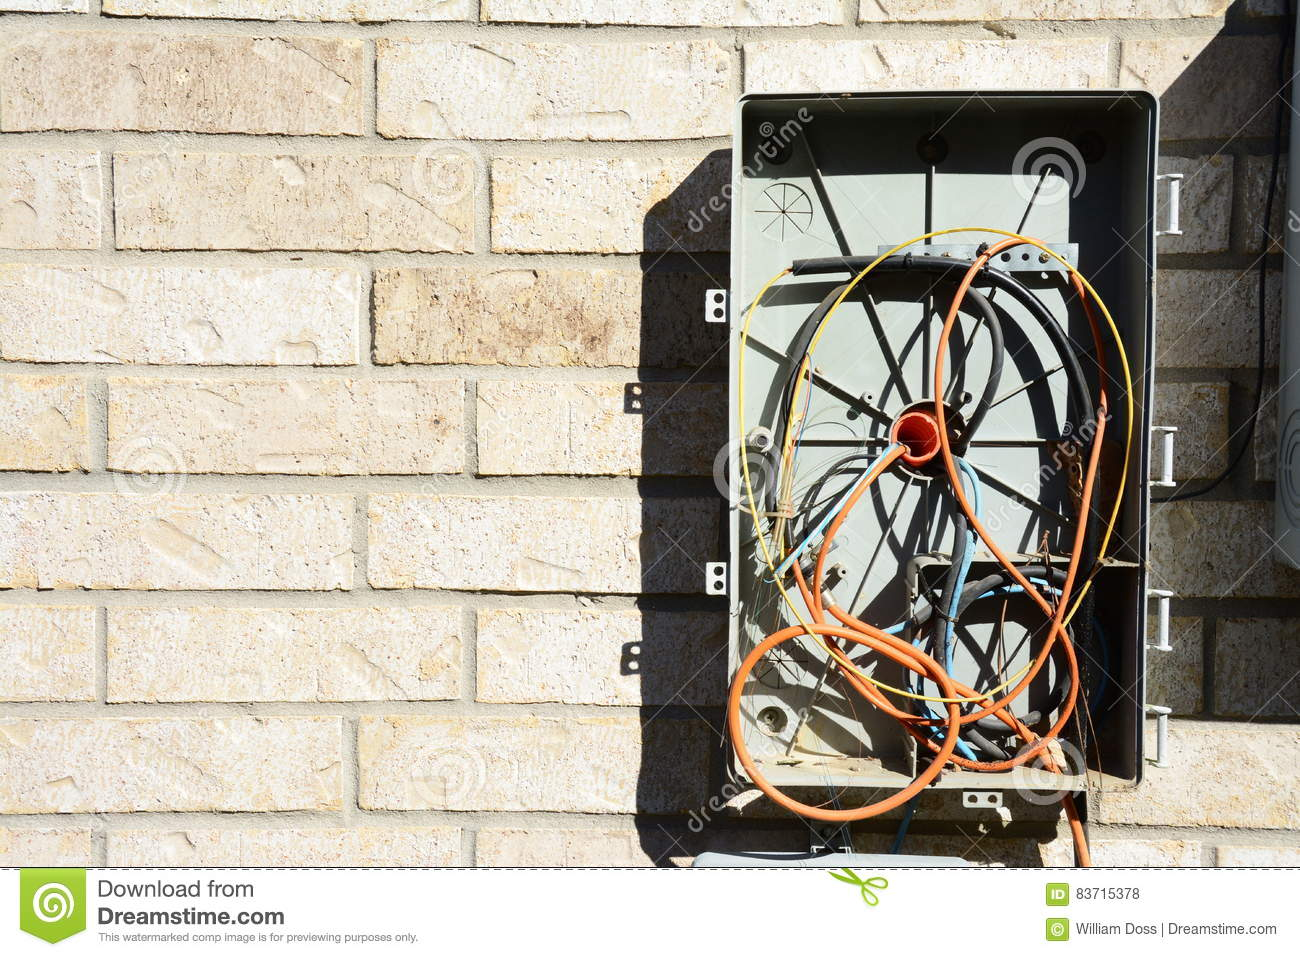 hight resolution of broken and messy cable television and internet wiring box with fiber optic cable